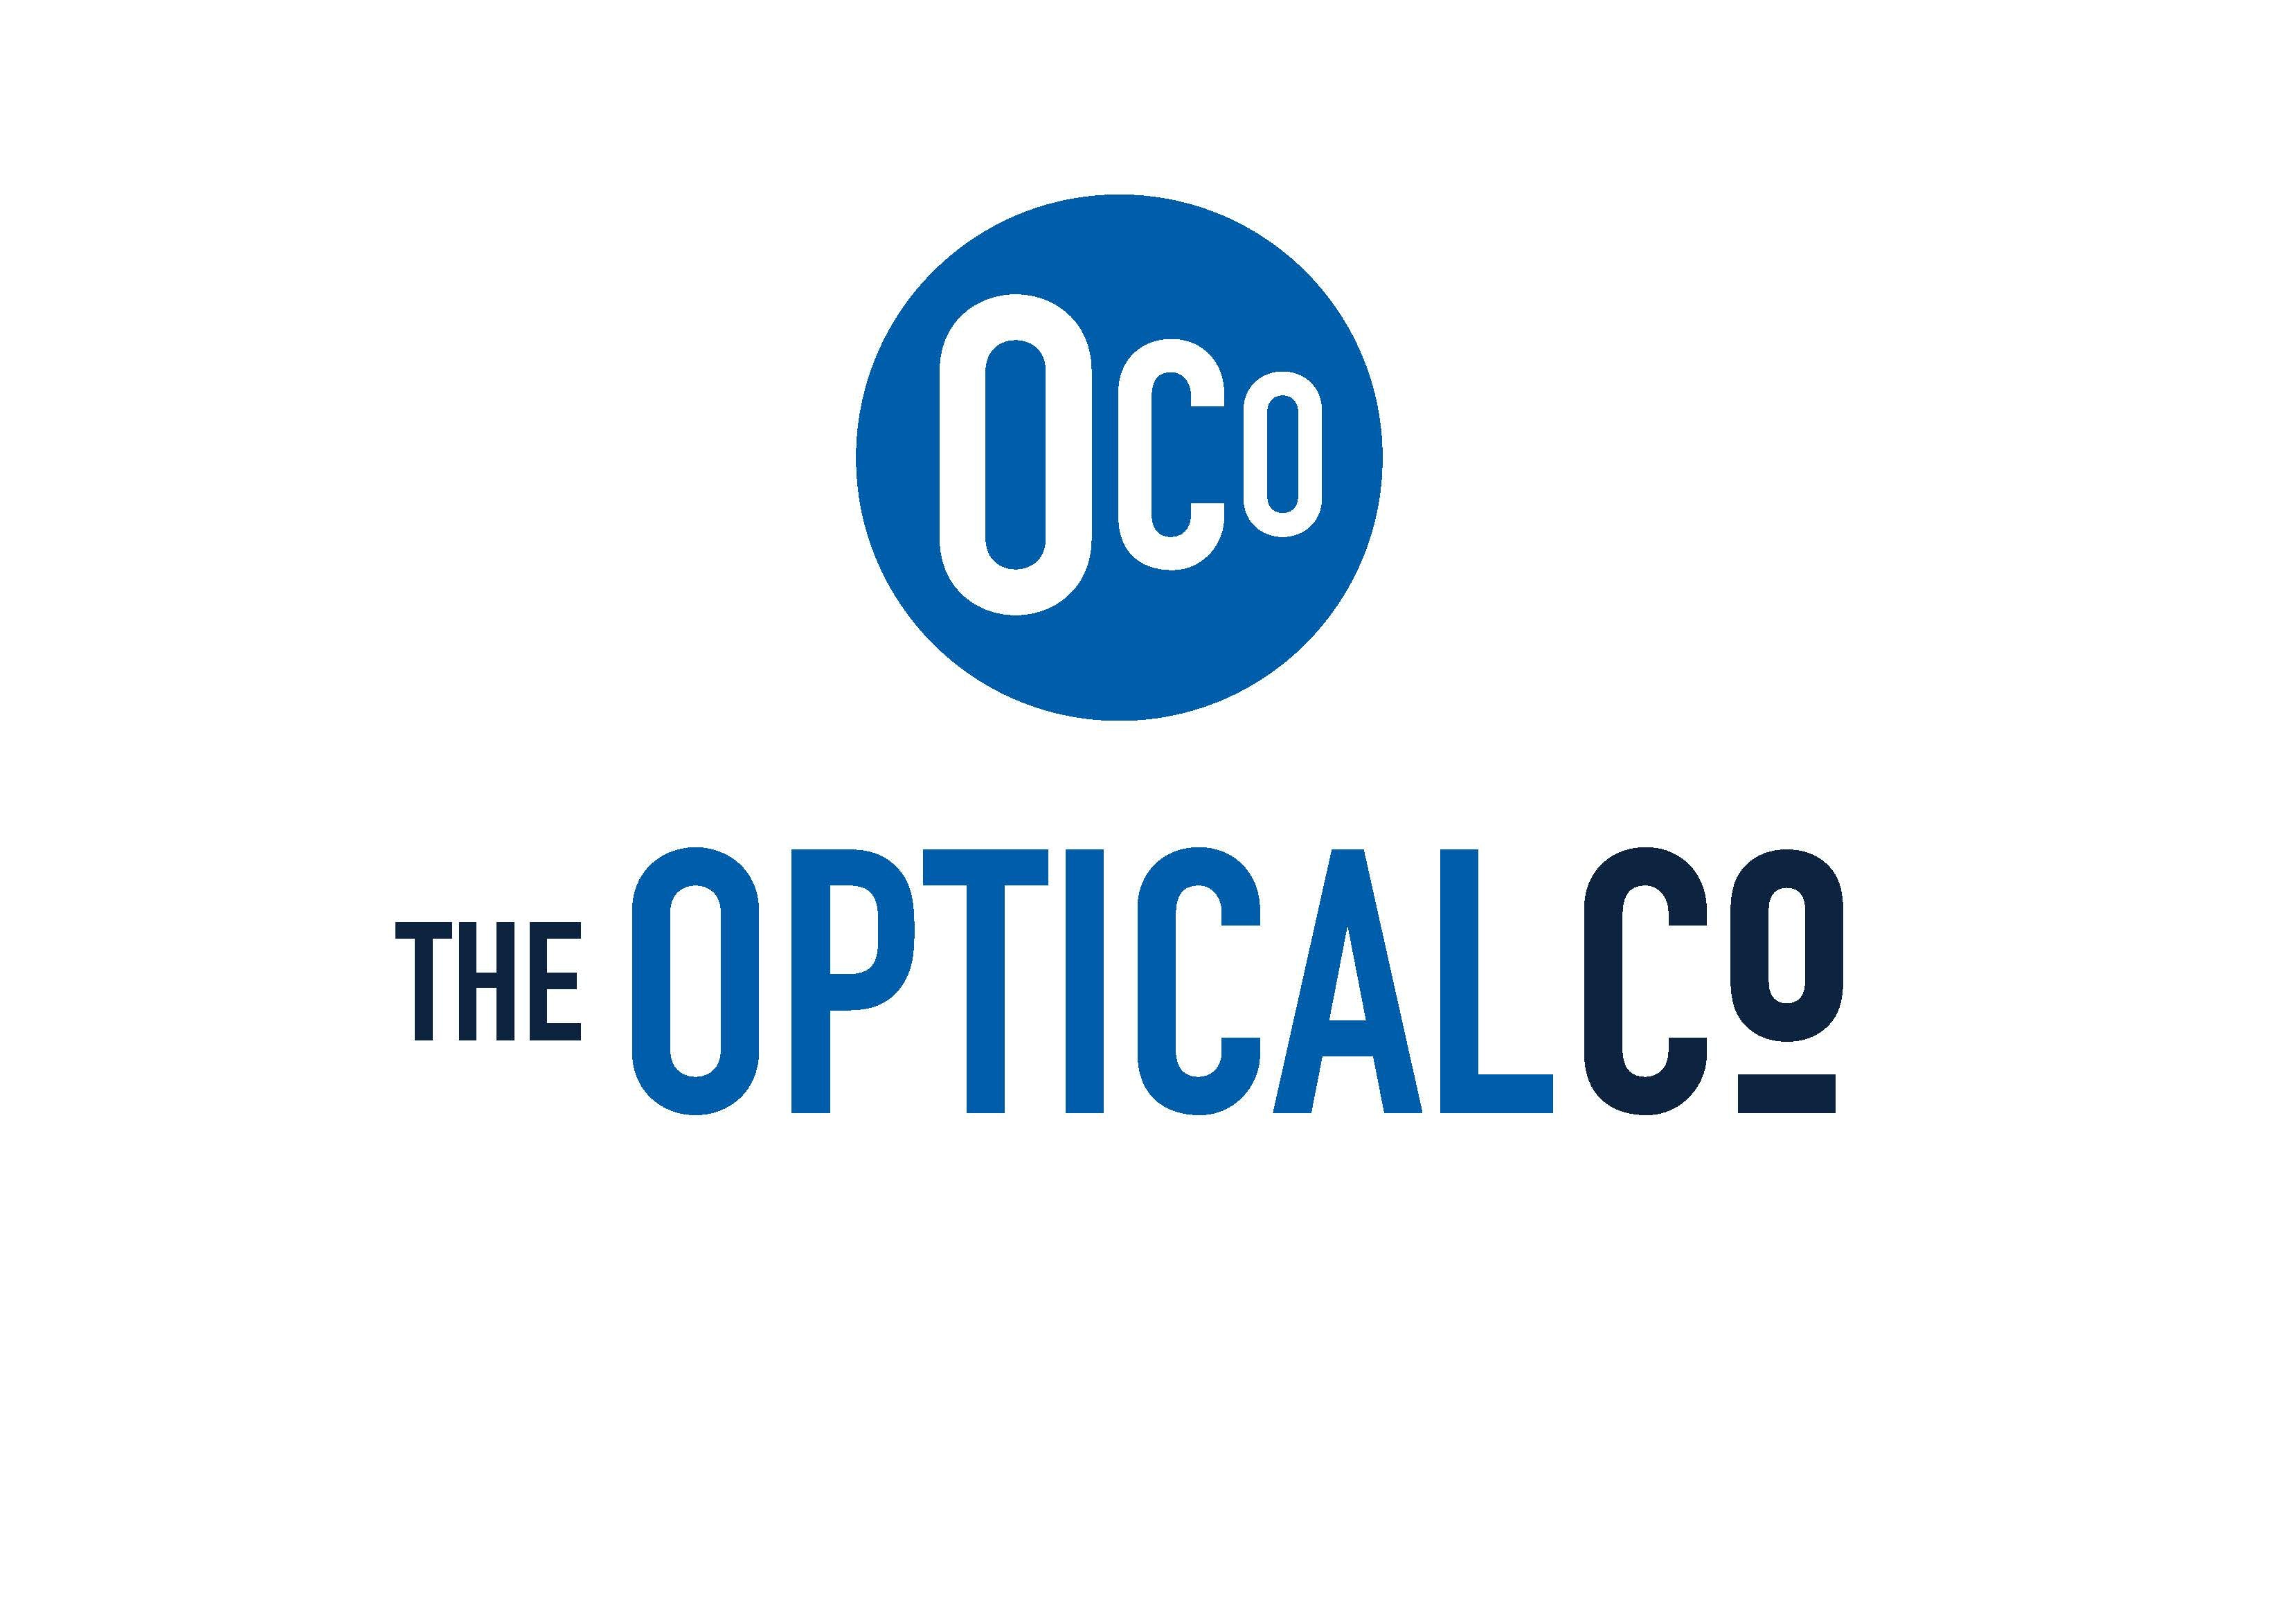 logo for The Optical Co Galeries Optometrists